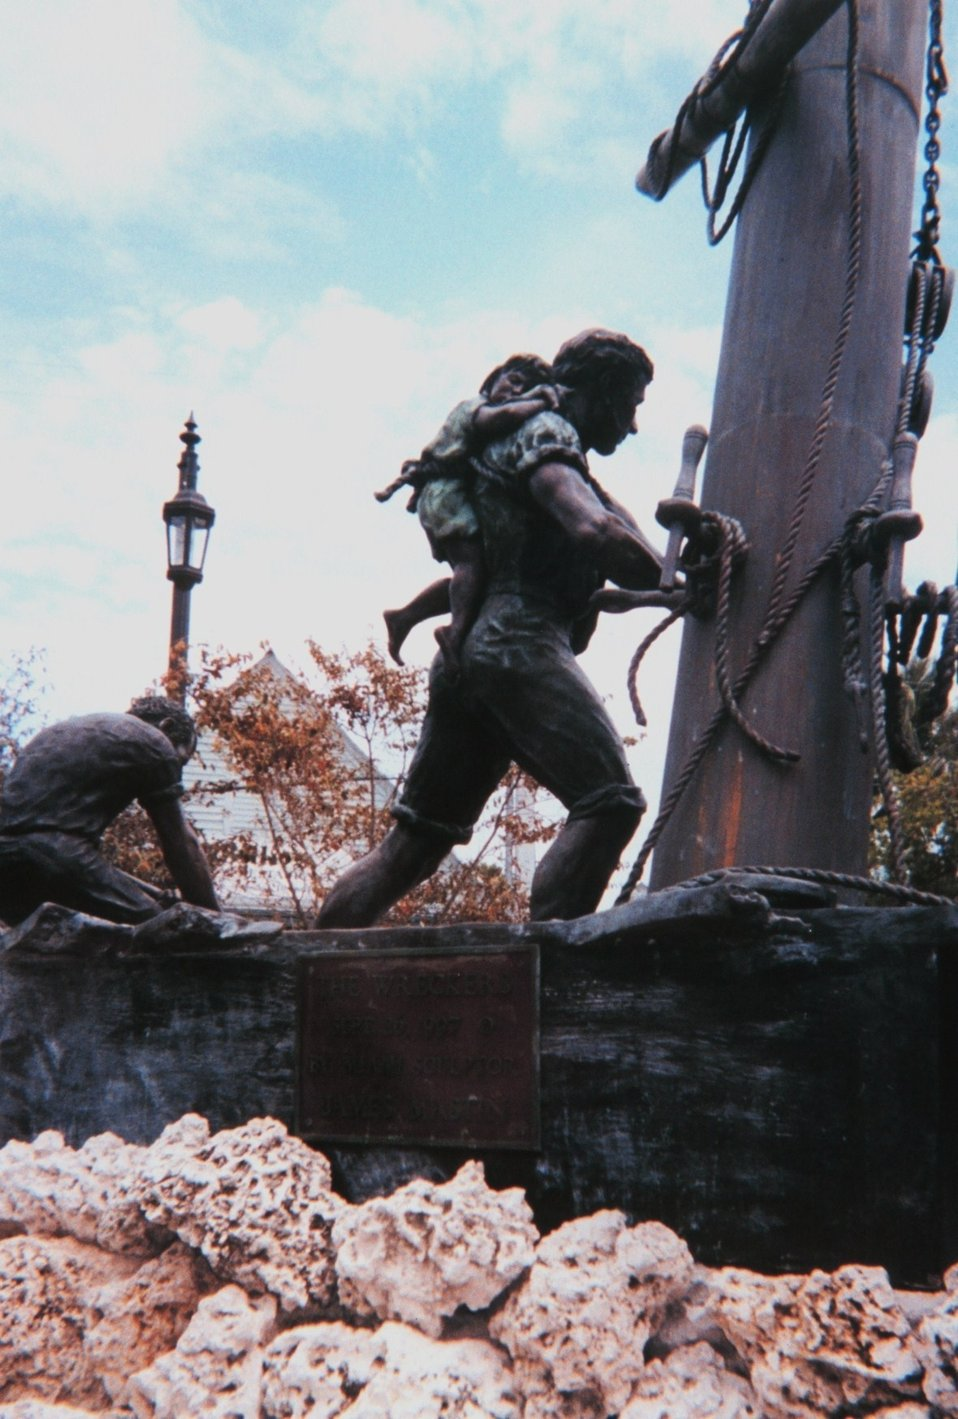 The 'Wrecker Memorial' at Key West.  Wreckers flocked to the scene of shipwrecks  hoping to salvage the cargoes for their own enrichment.  However, their first legal priority was to save lives.